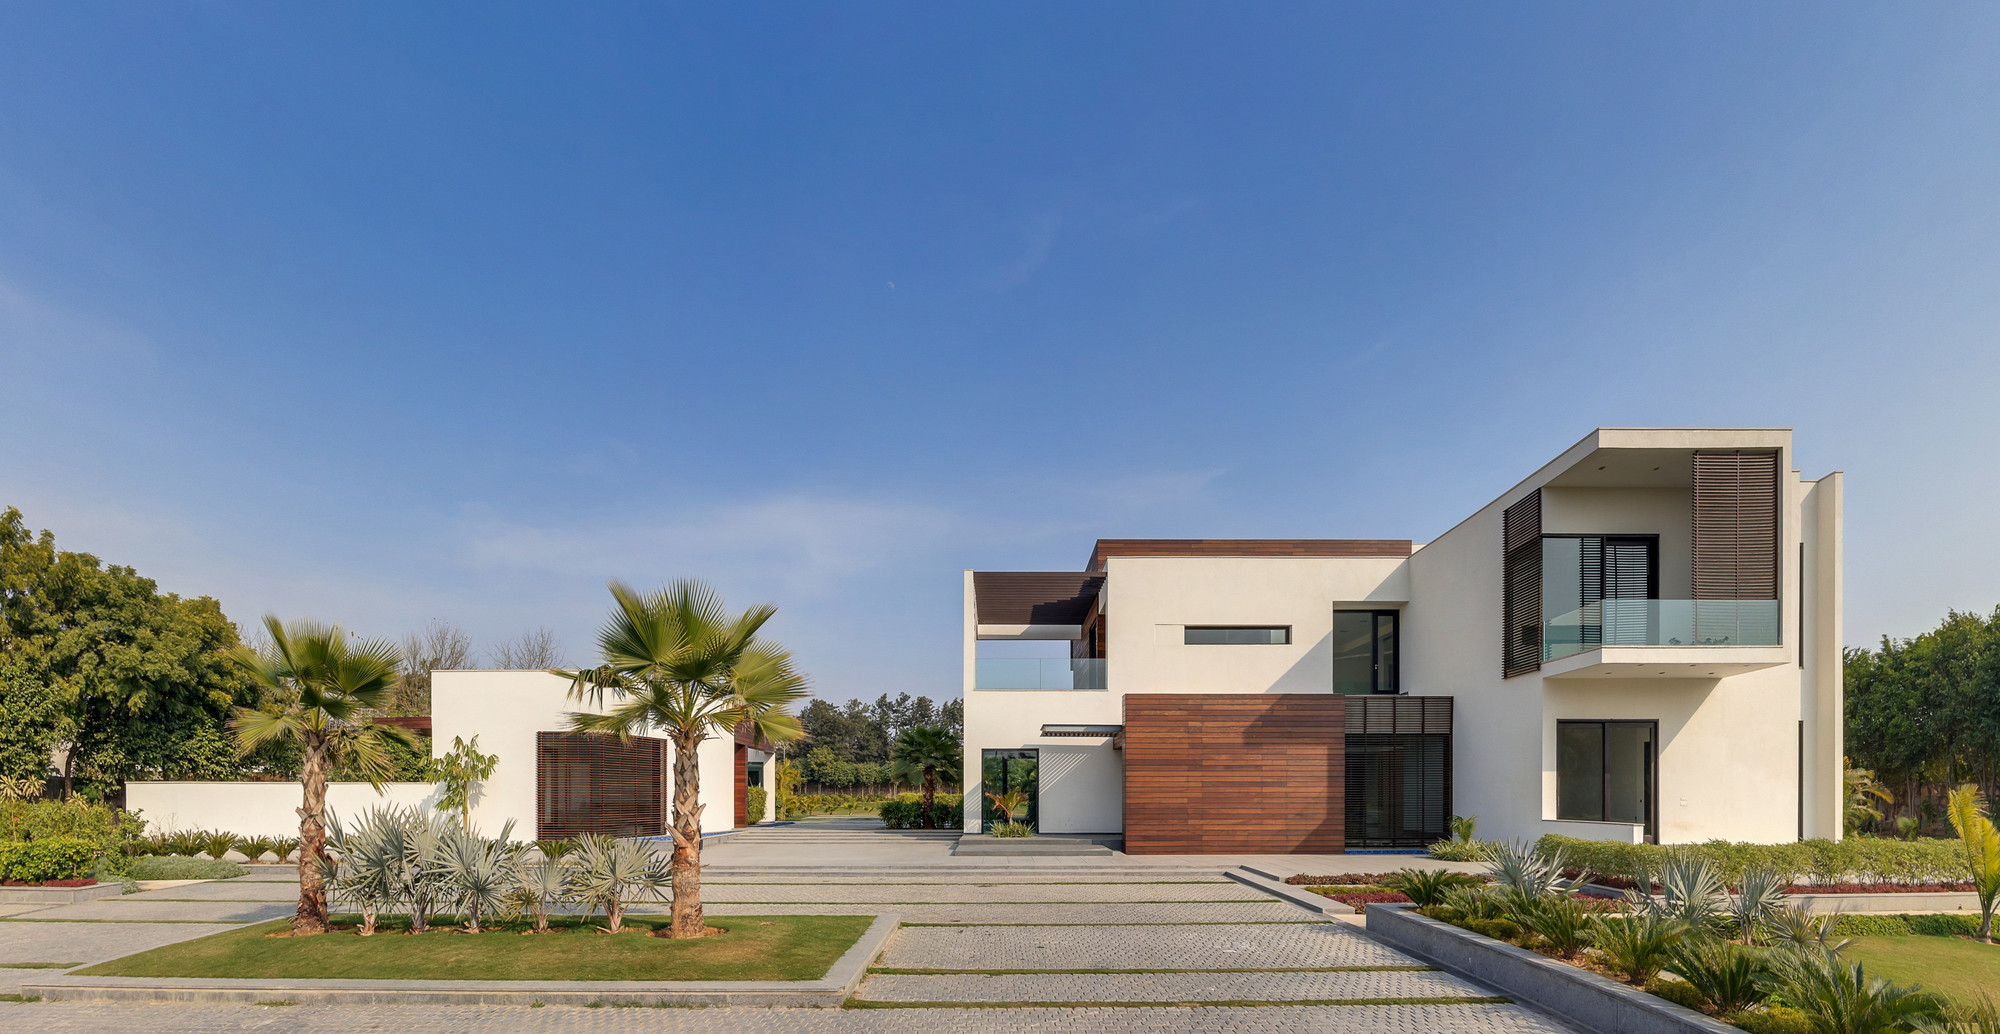 F3 Farmhouse / DADA & Partners, © Ranjan Sharma / Lightzone India